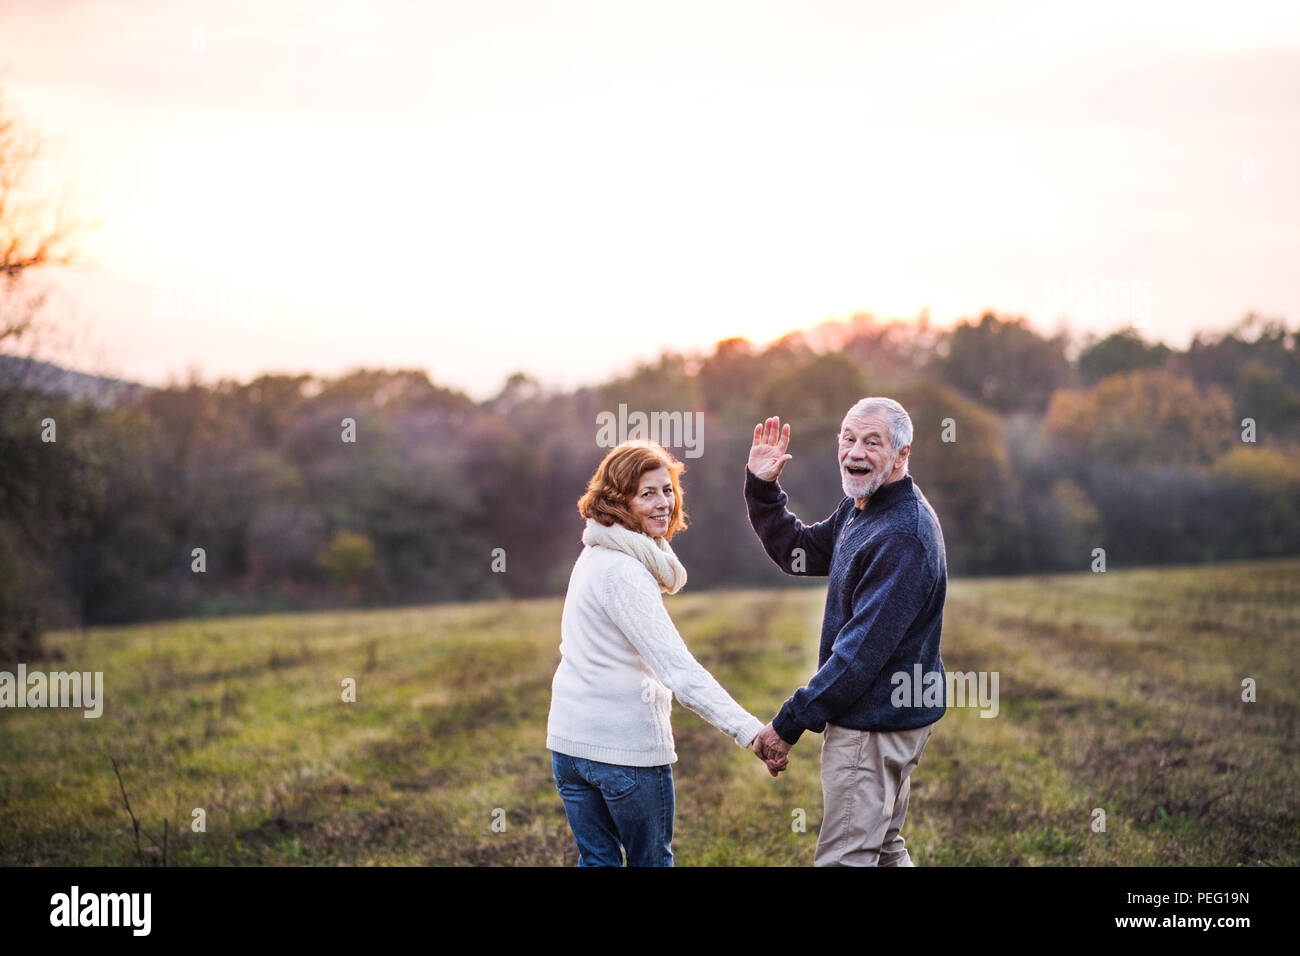 Senior couple walking in an autumn nature, holding hands. - Stock Image